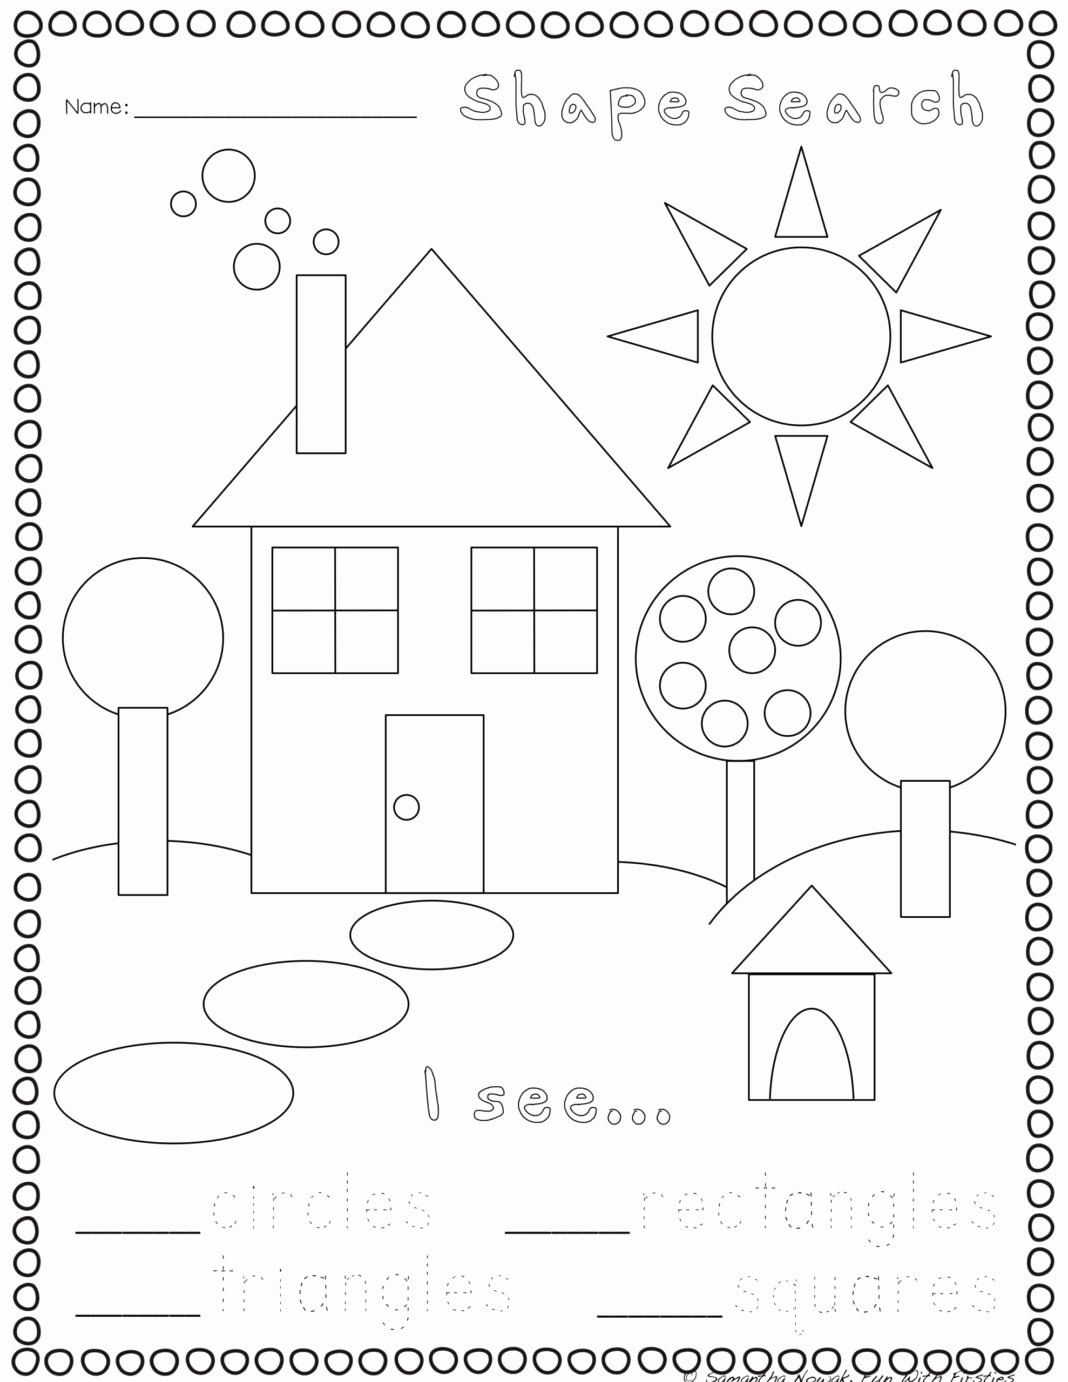 Circle Graphs Worksheets 7th Grade New Worksheets Print Go Geometry Practice Worksheets Shapes